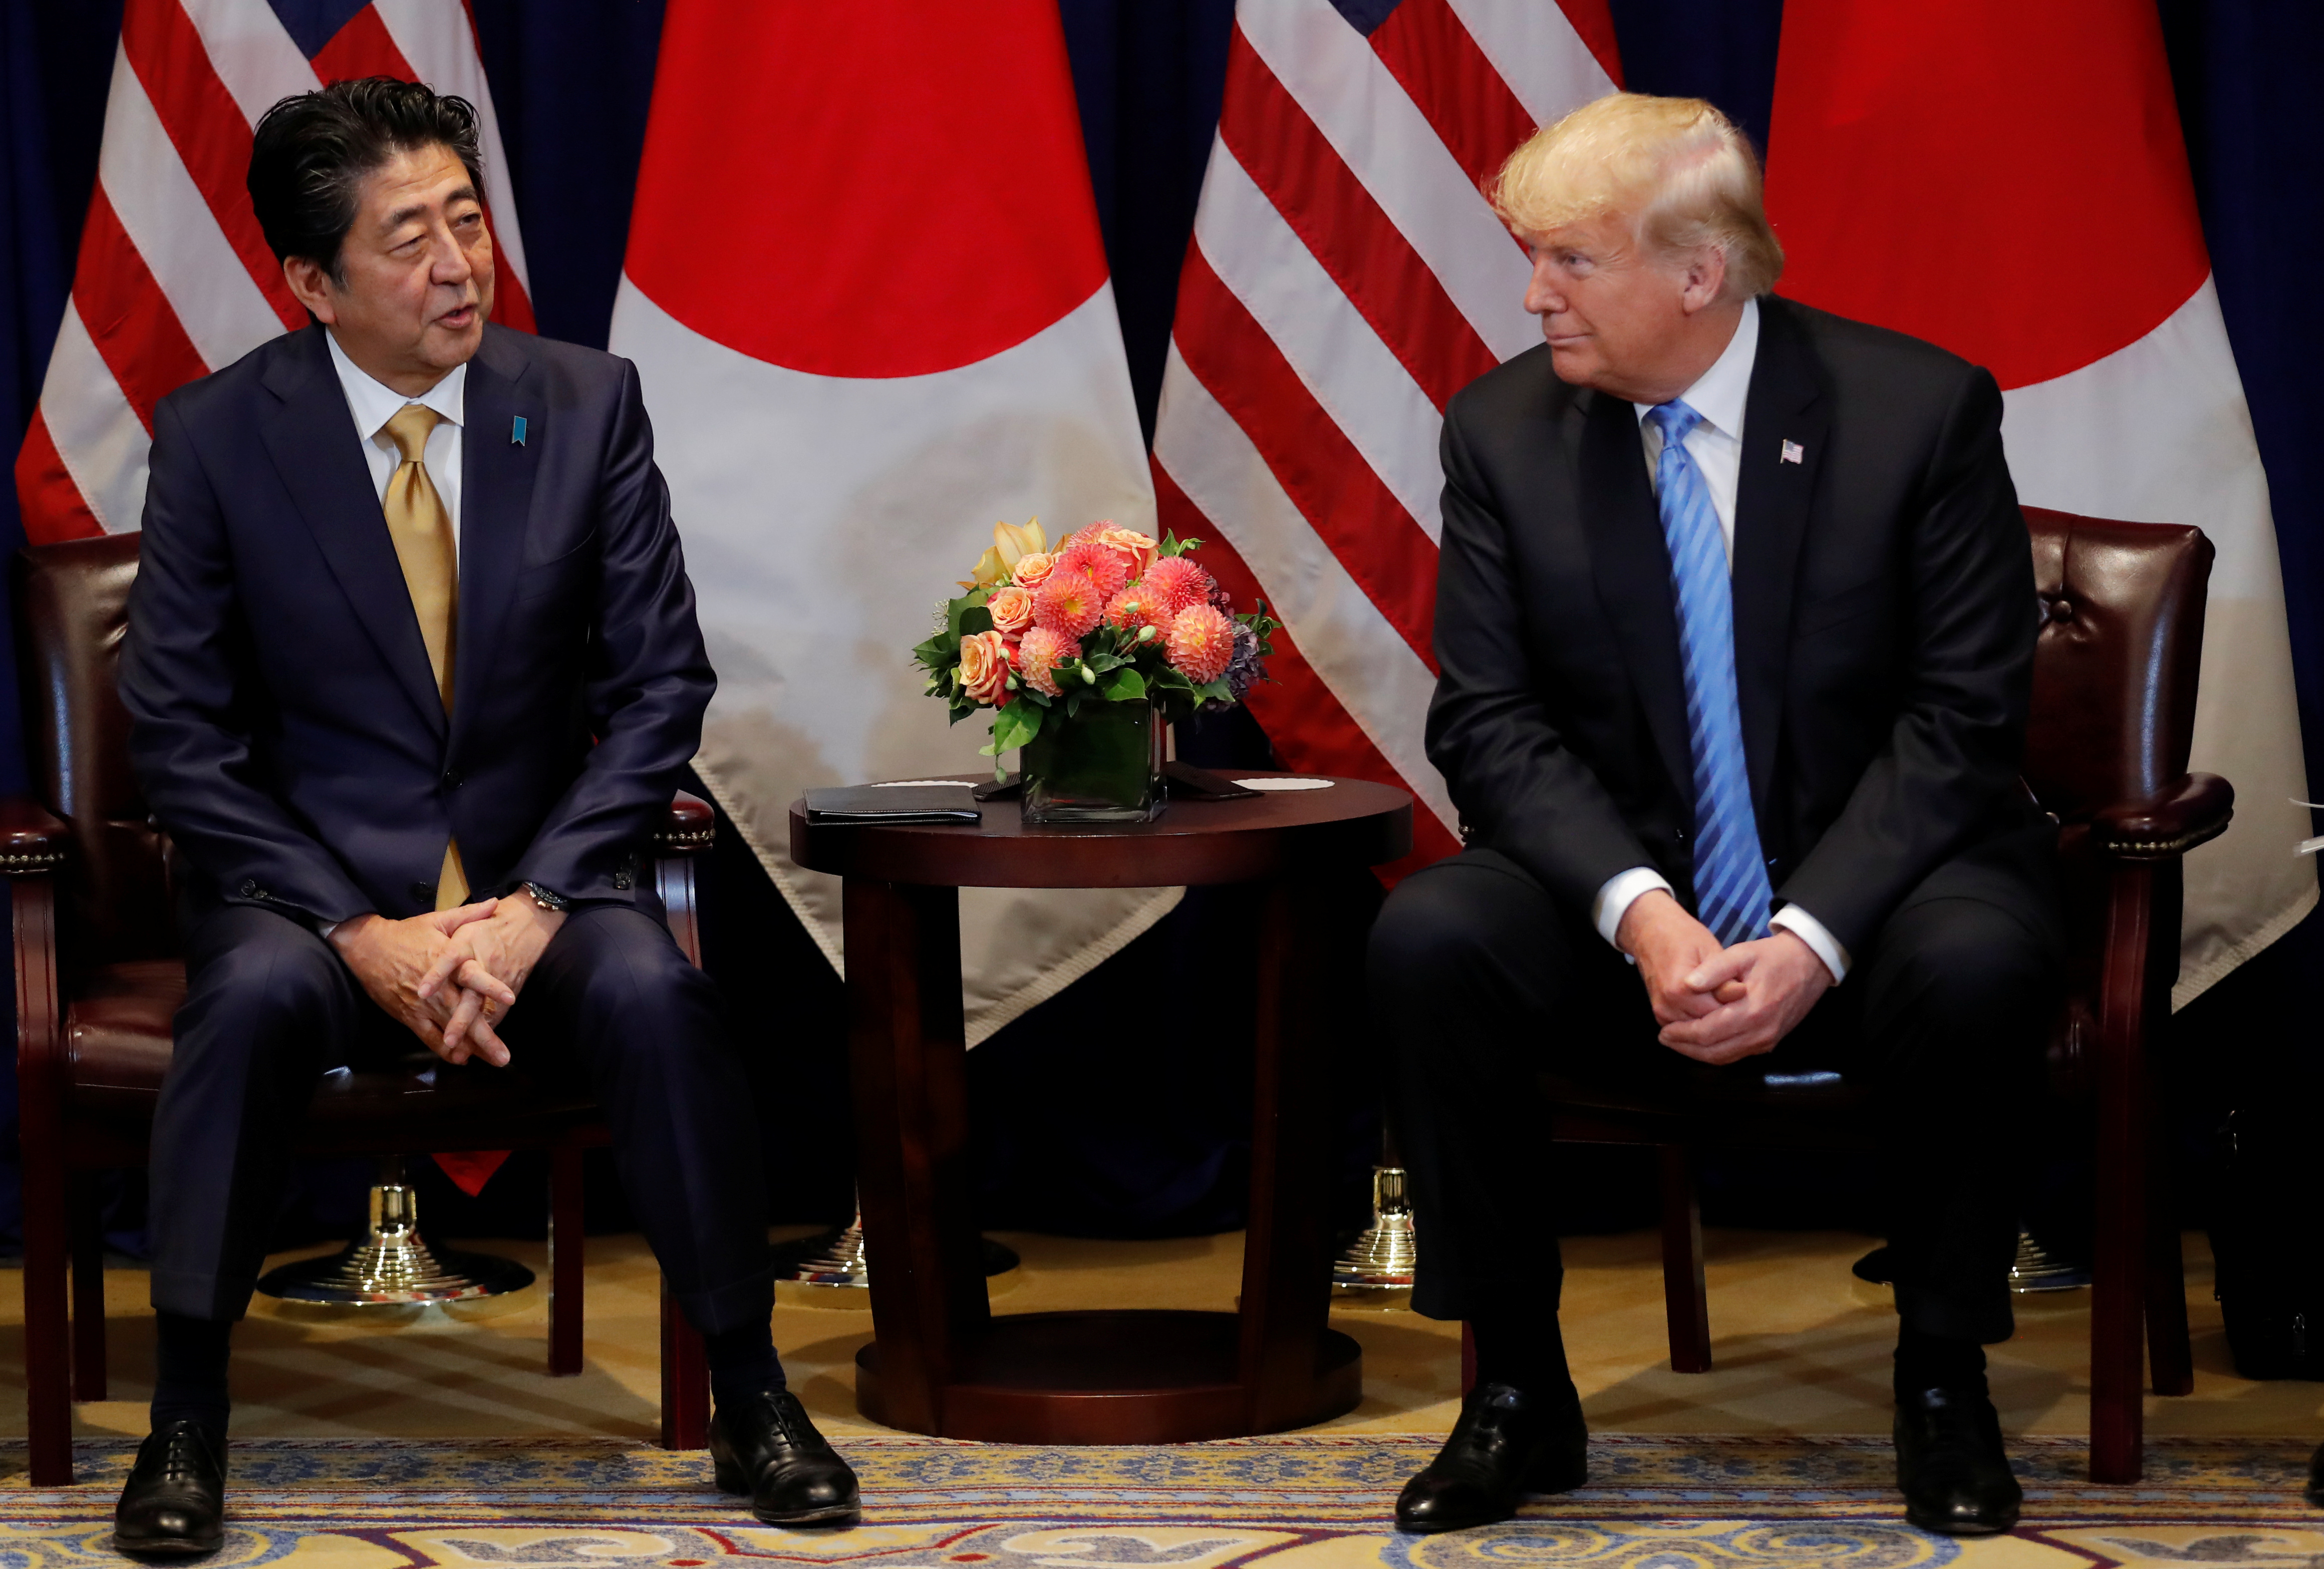 FILE PHOTO - U.S. President Donald Trump listens to Japan's Prime Minister Shinzo Abe during a bilateral meeting on the sidelines of the 73rd session of the United Nations General Assembly in New York, U.S., September 26, 2018. REUTERS/Carlos Barria